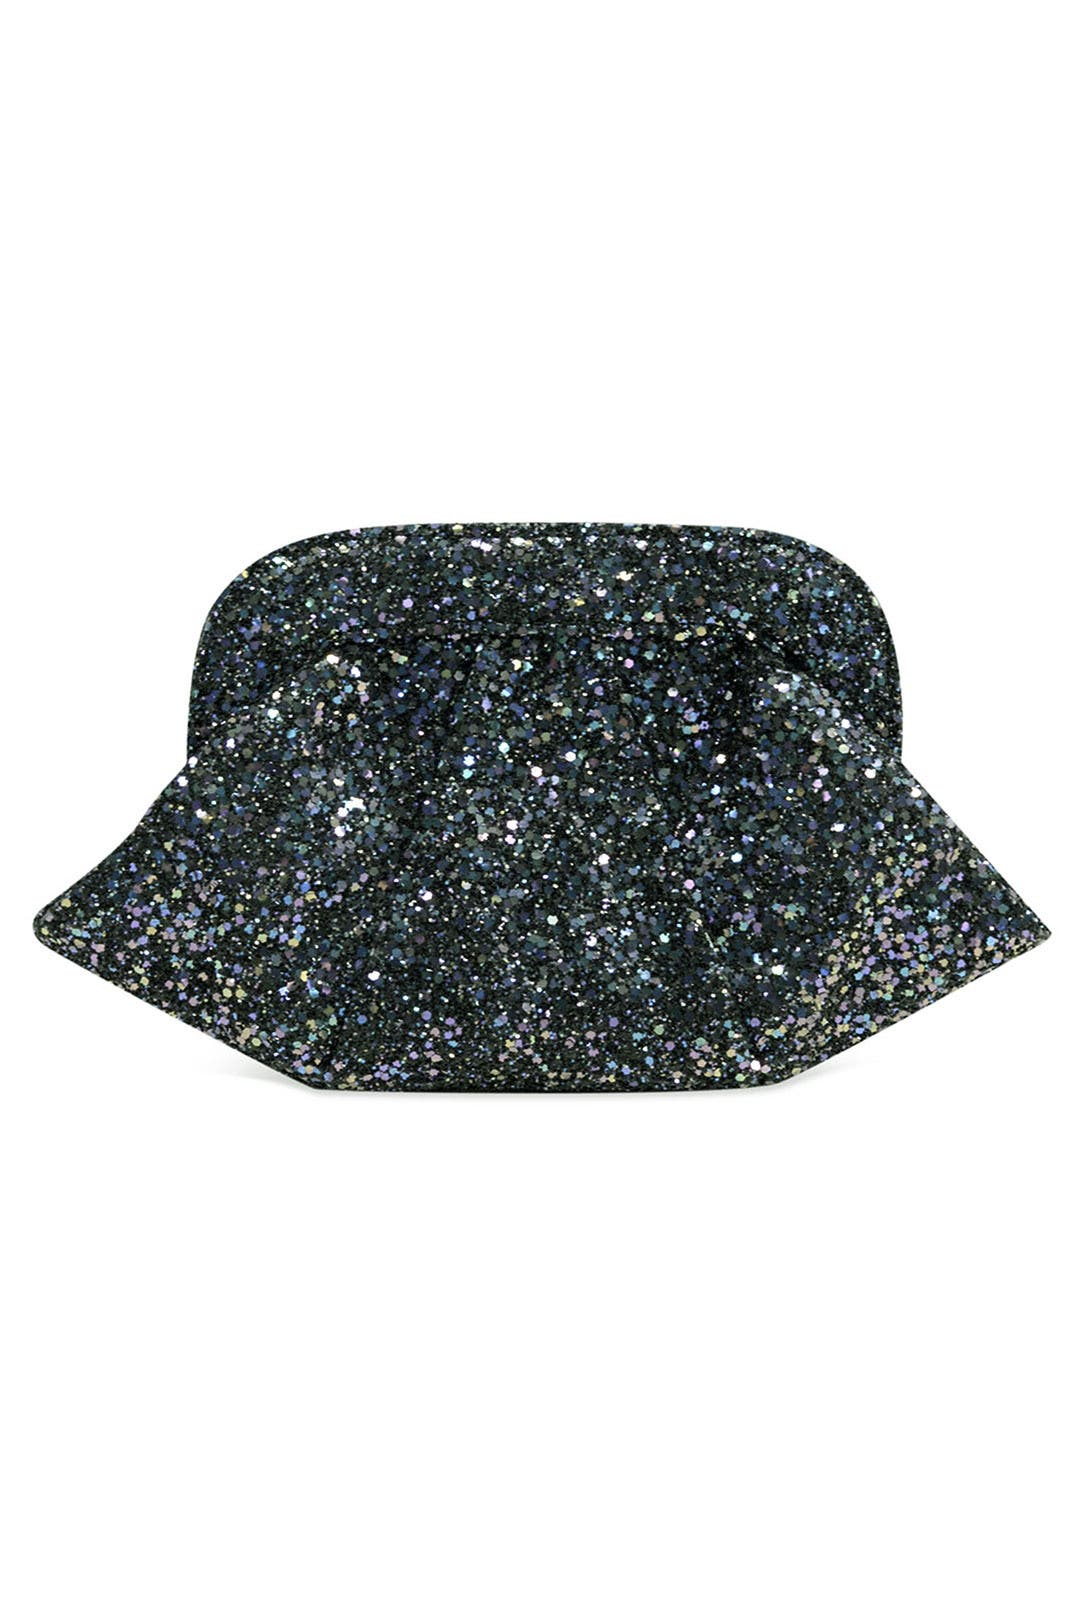 Lucy Glitter Clutch by Lauren Merkin